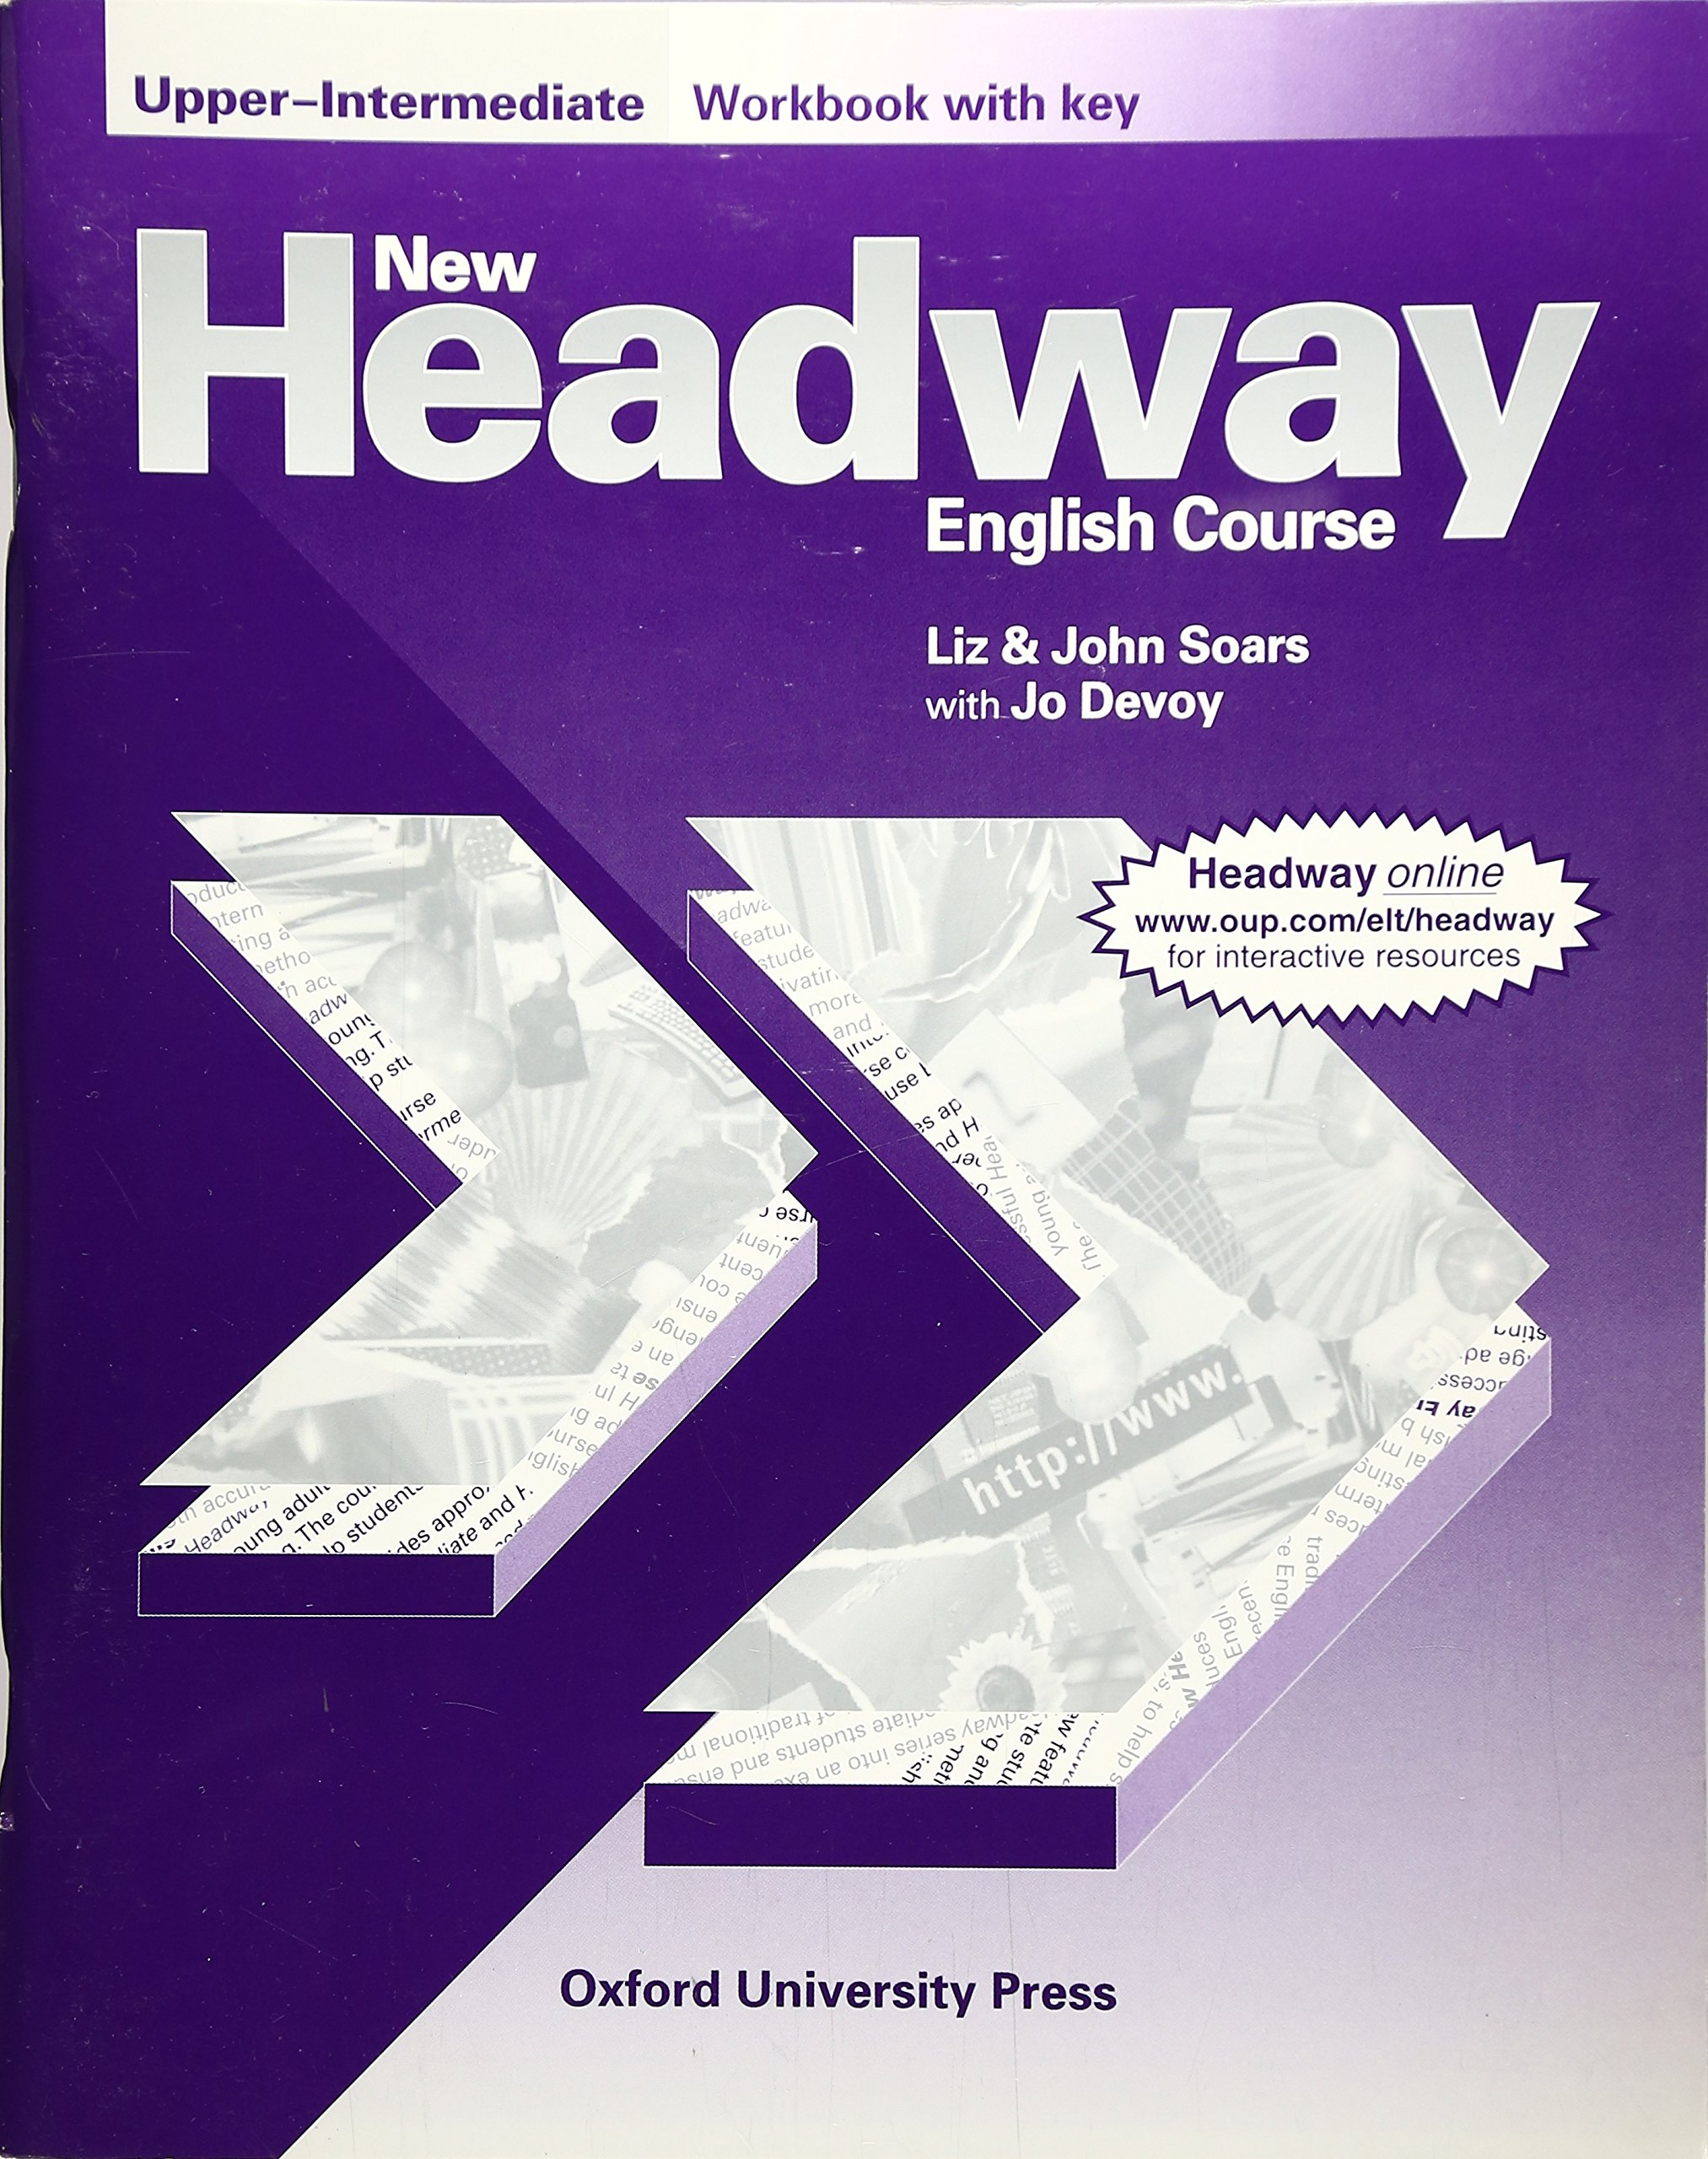 New Headway English Course, Upper-Intermediate, Workbook, with Key